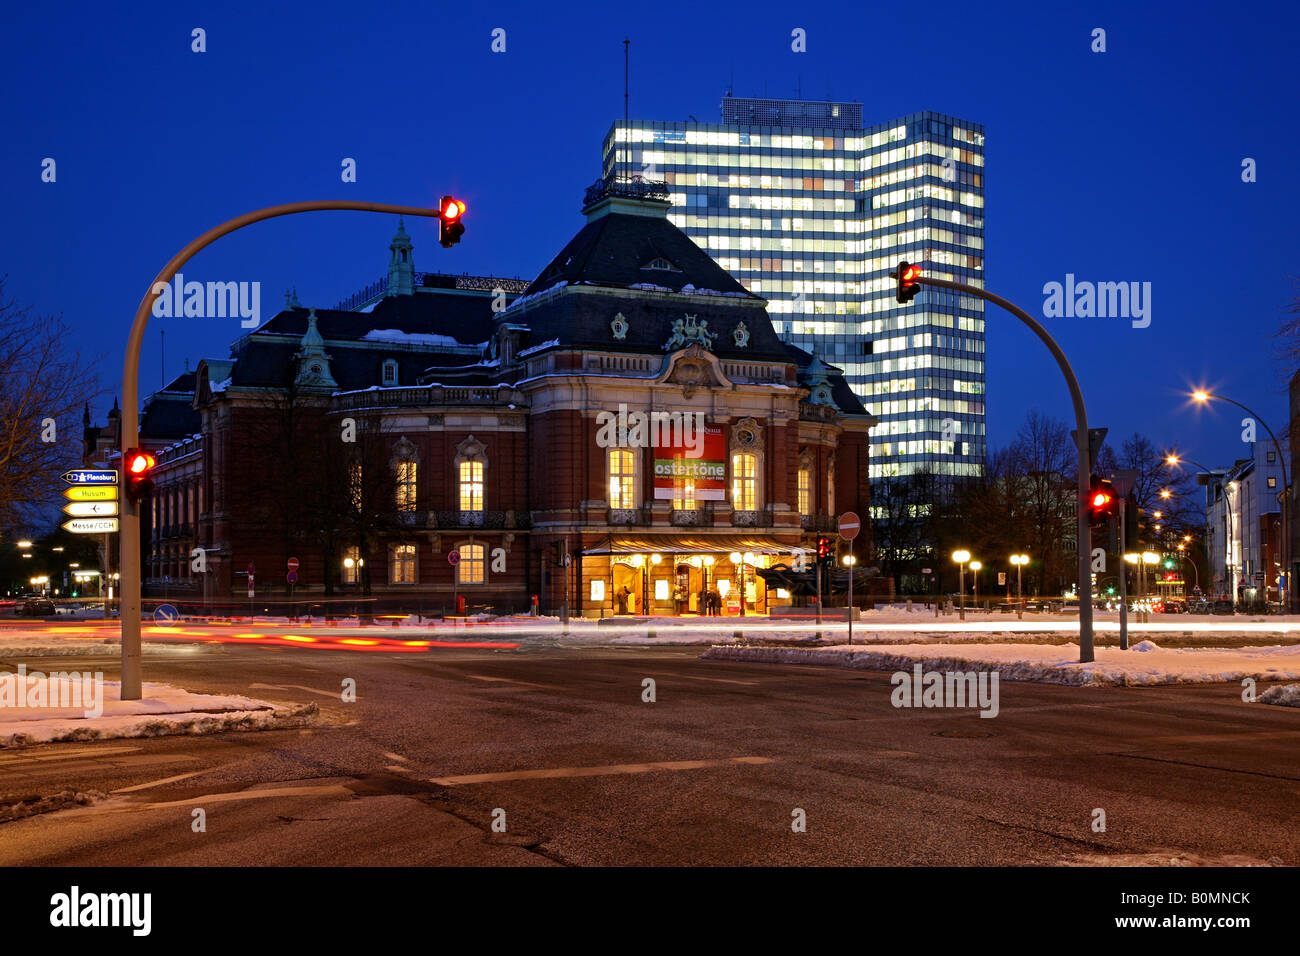 Concert hall Laeiszhalle and the (former) Unilever highrise building in Hamburg, Germany - Stock Image